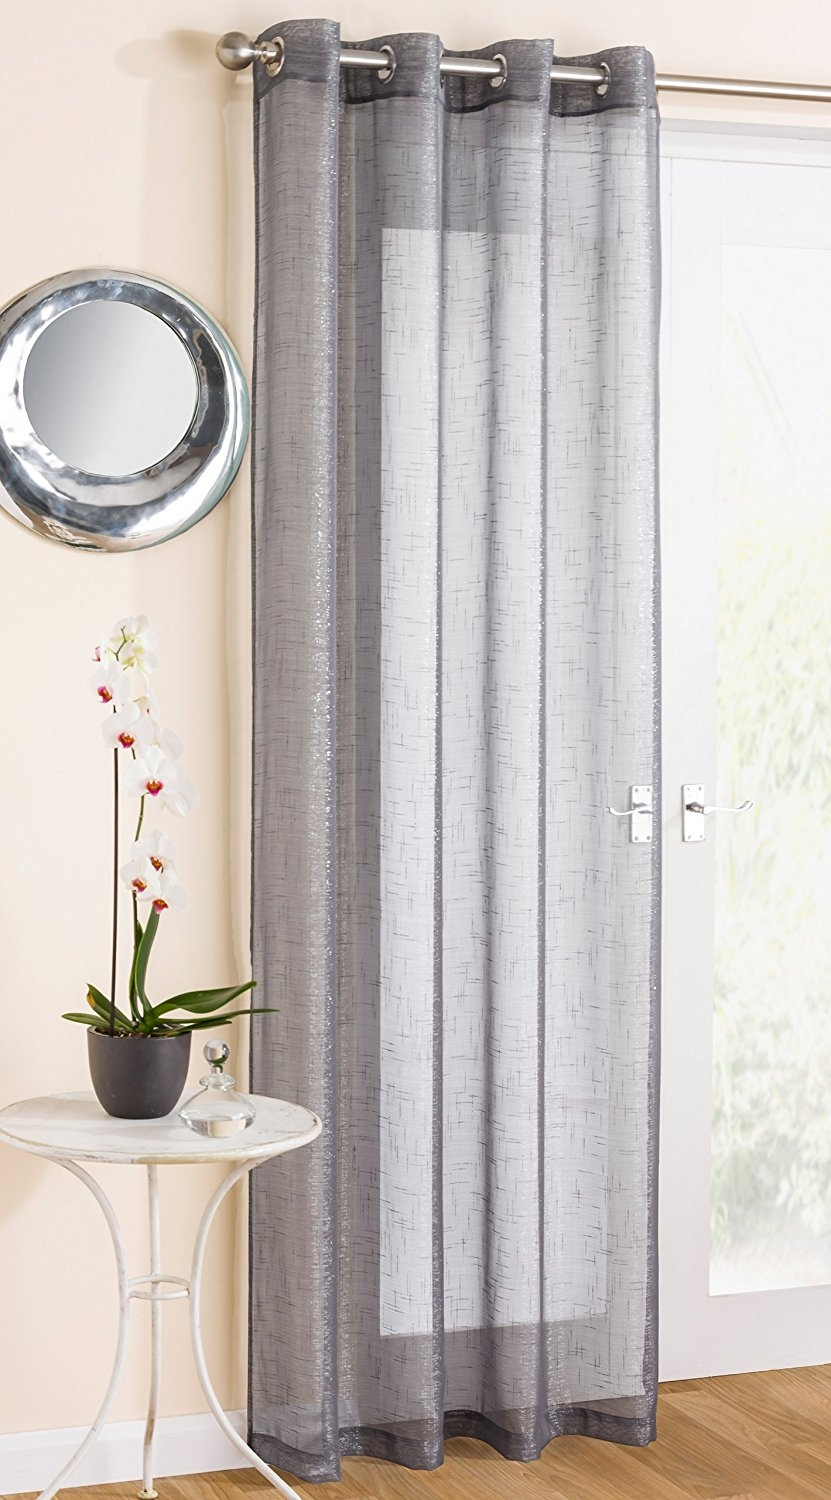 White Sparkle Voile Curtain Panel Eyelet Heading 54 Wide X 108 Regarding Extra Long Voile Curtains (Image 14 of 15)